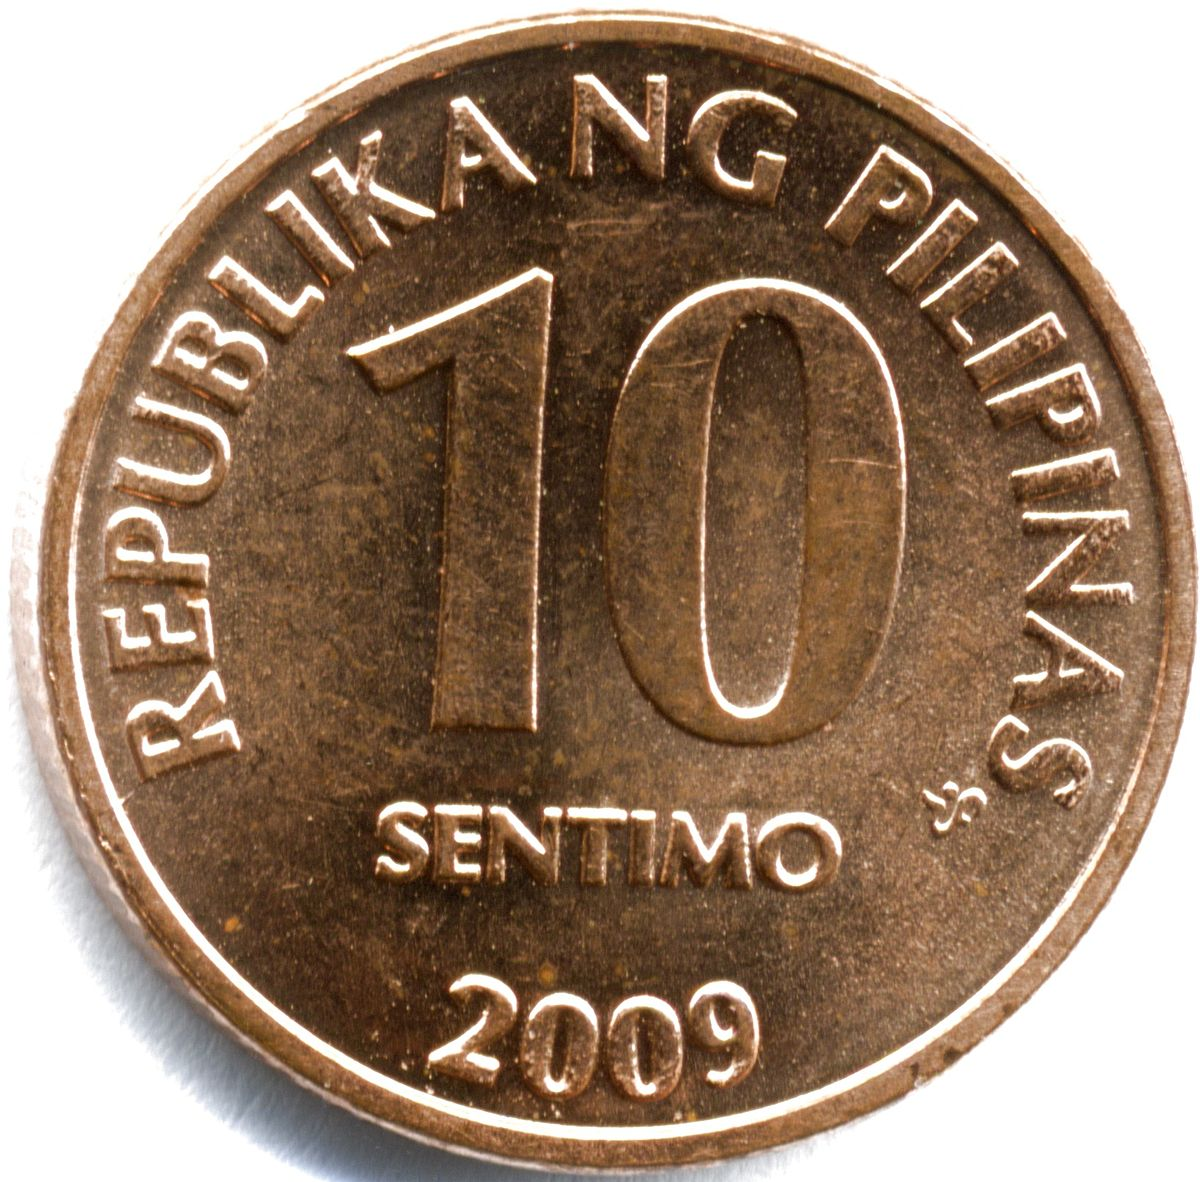 Coin Ph: Philippine Ten Centavo Coin